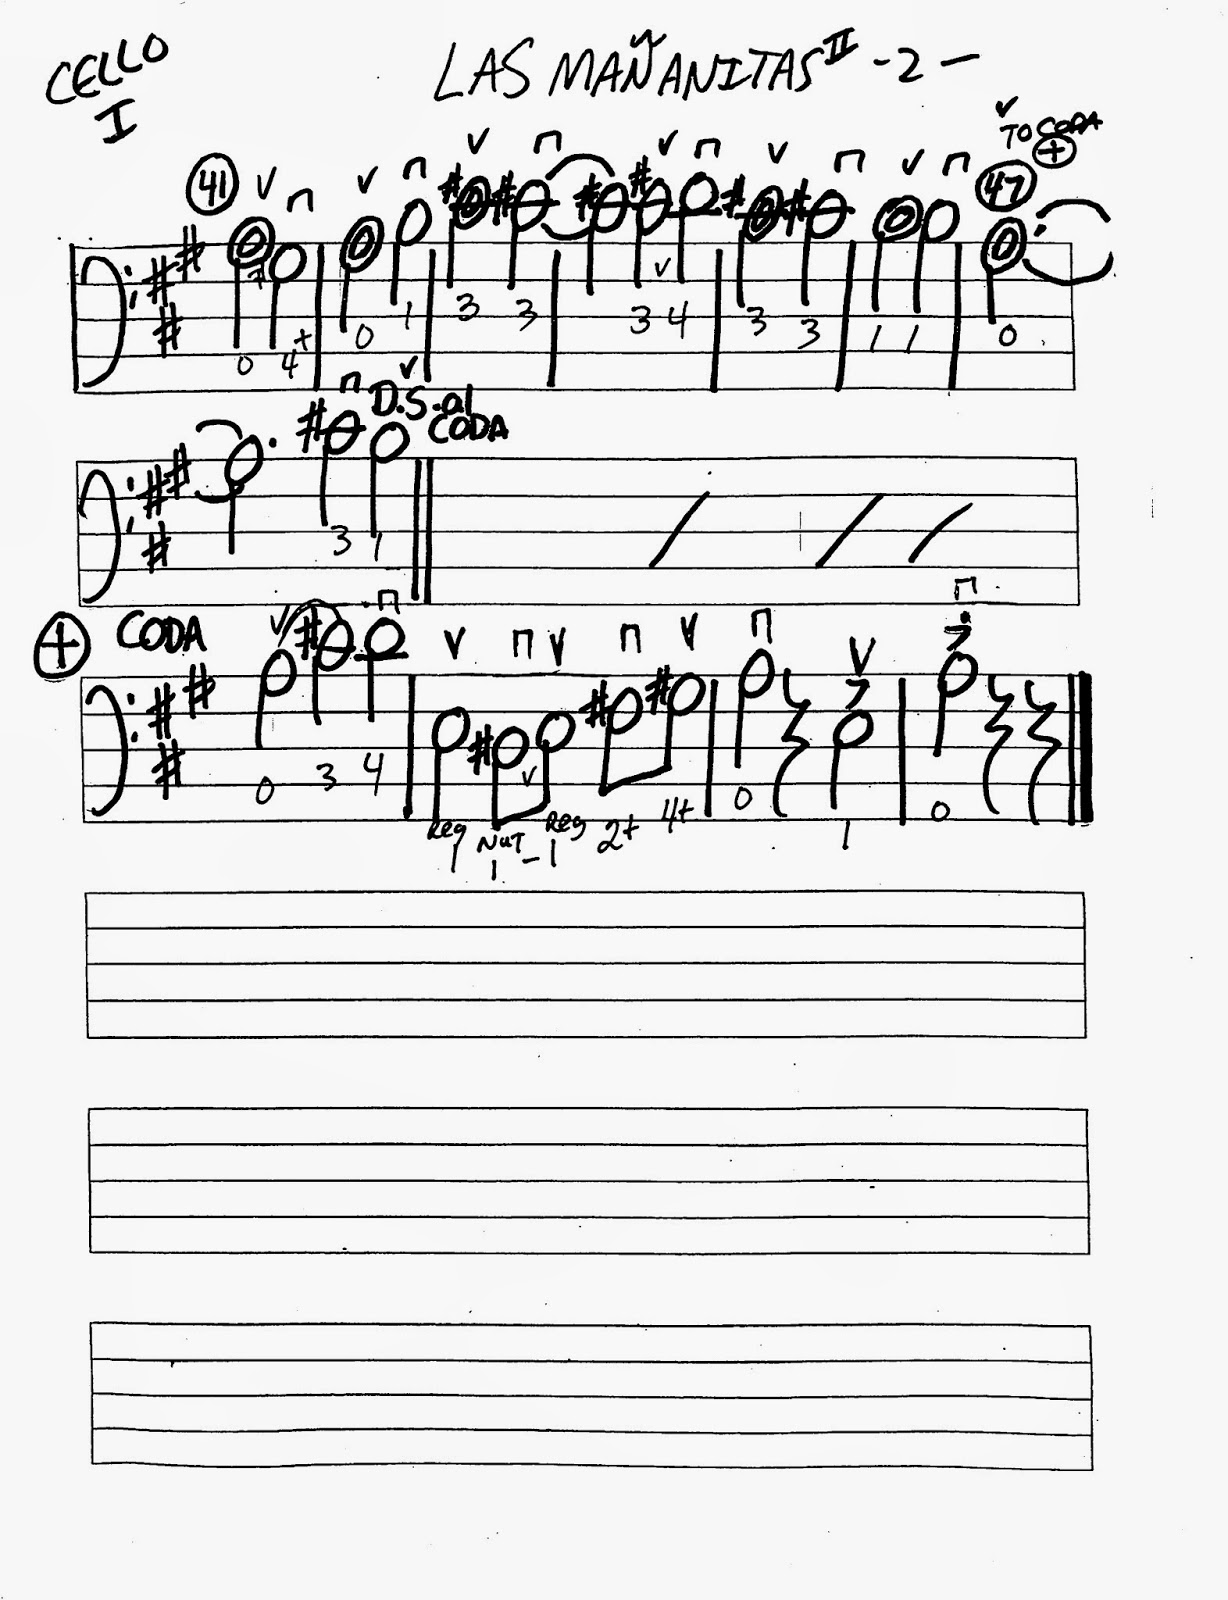 Miss Jacobson S Music Las Mananitas Ii Worksheets